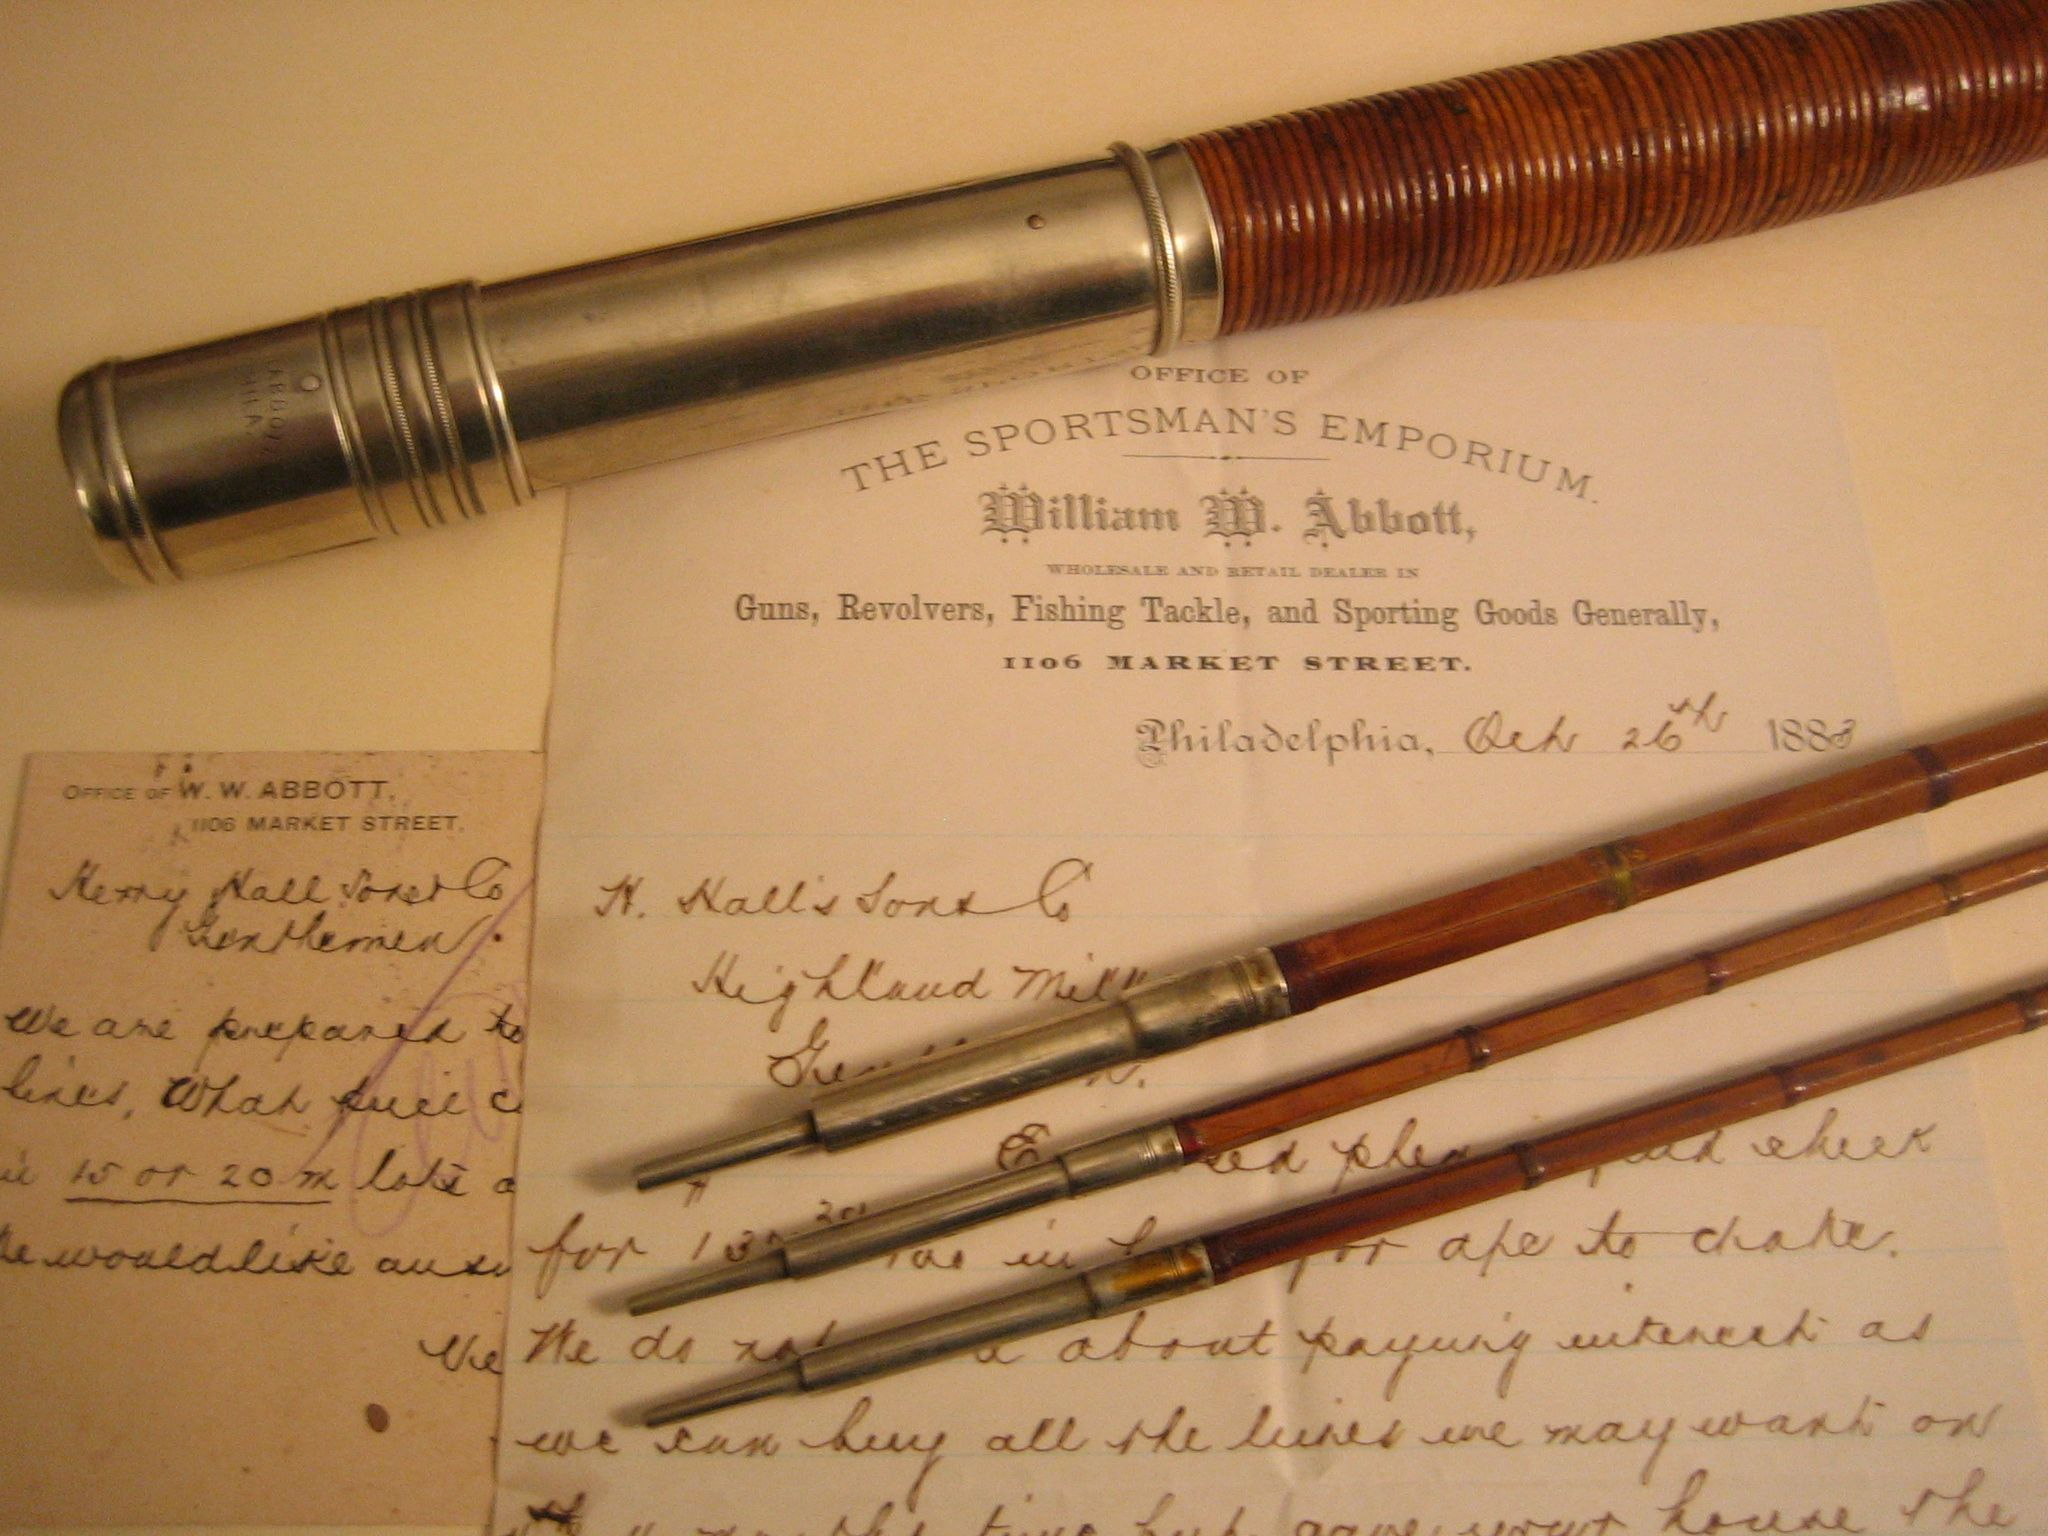 William Abbott Bamboo Fly Rod With Letterhead Postal Card